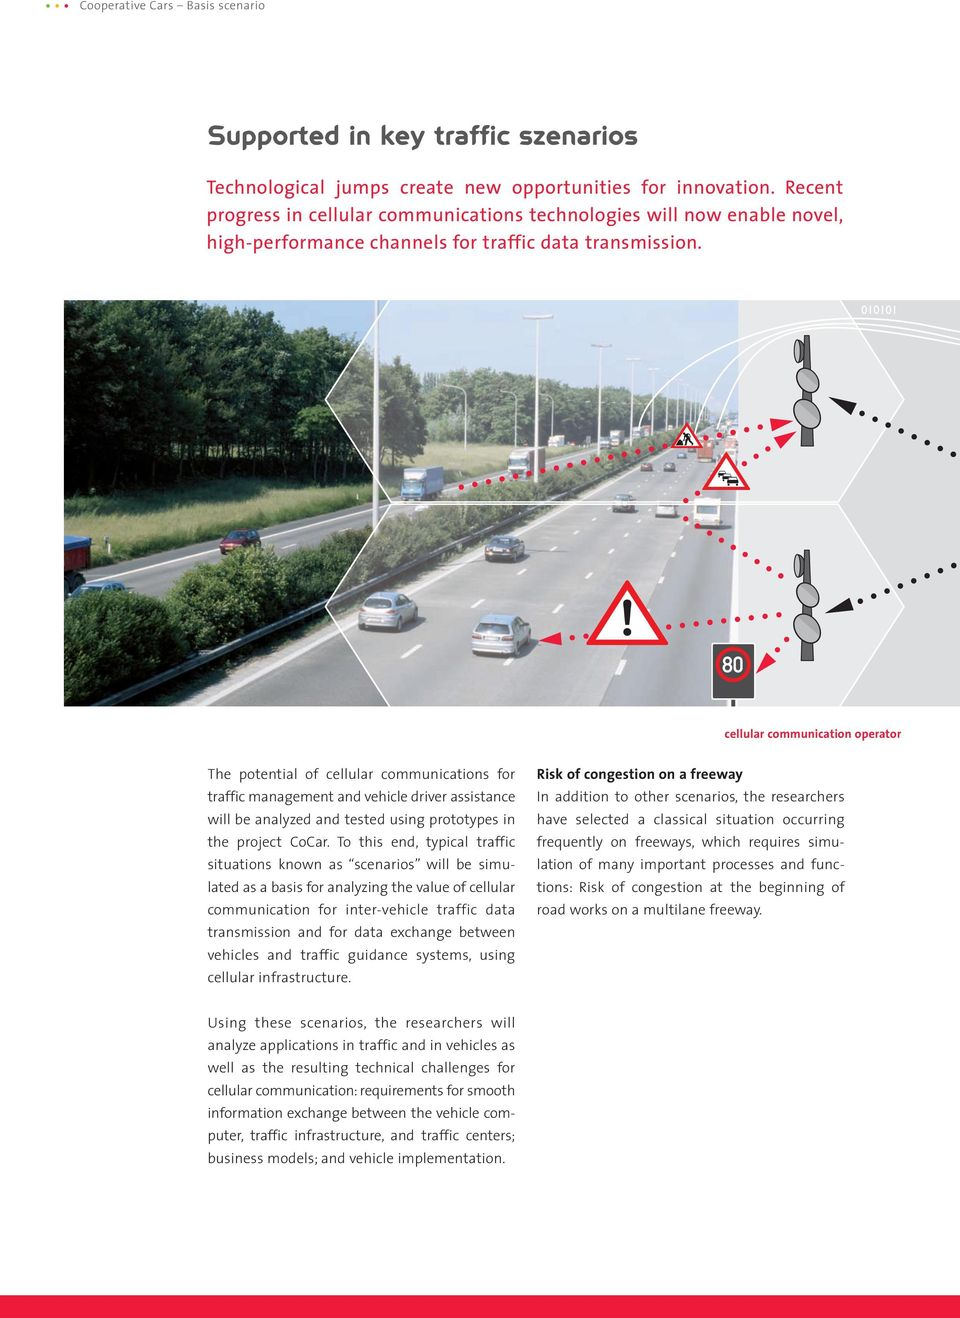 cellular communication operator The potential of cellular communications for traffic management and vehicle driver assistance will be analyzed and tested using prototypes in the project CoCar.